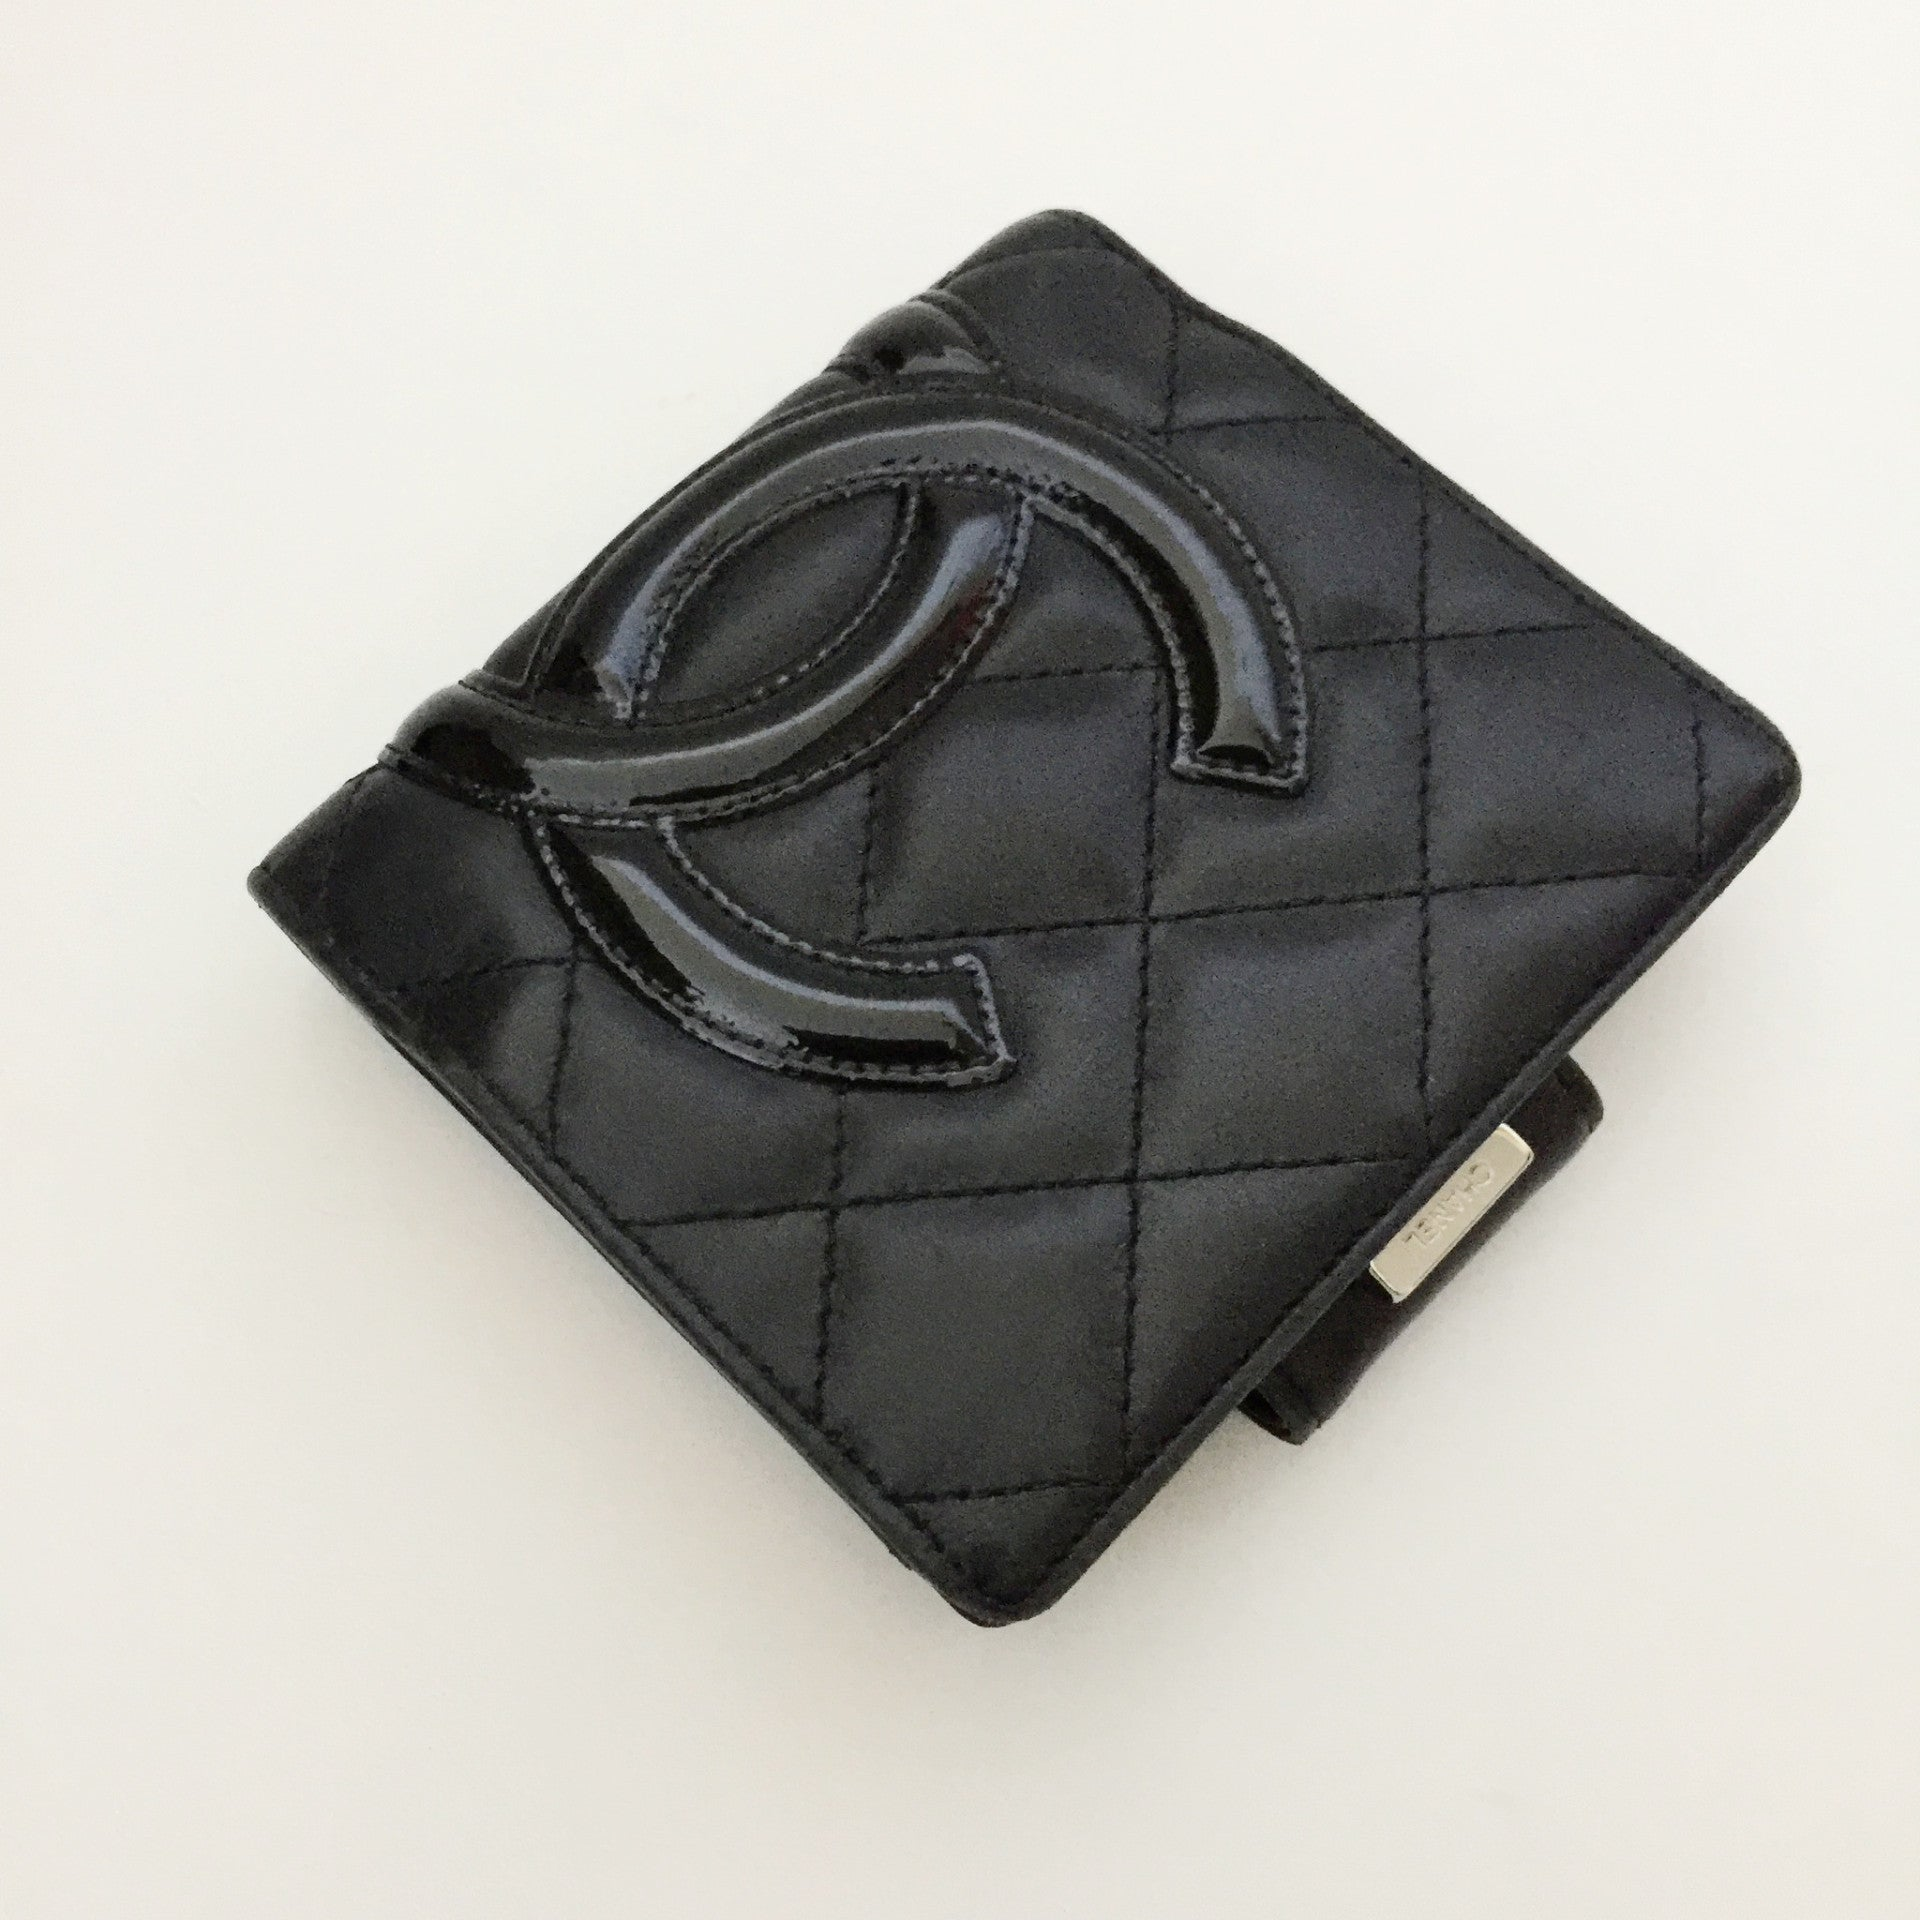 Authentic CHANEL Cambon Compact Wallet